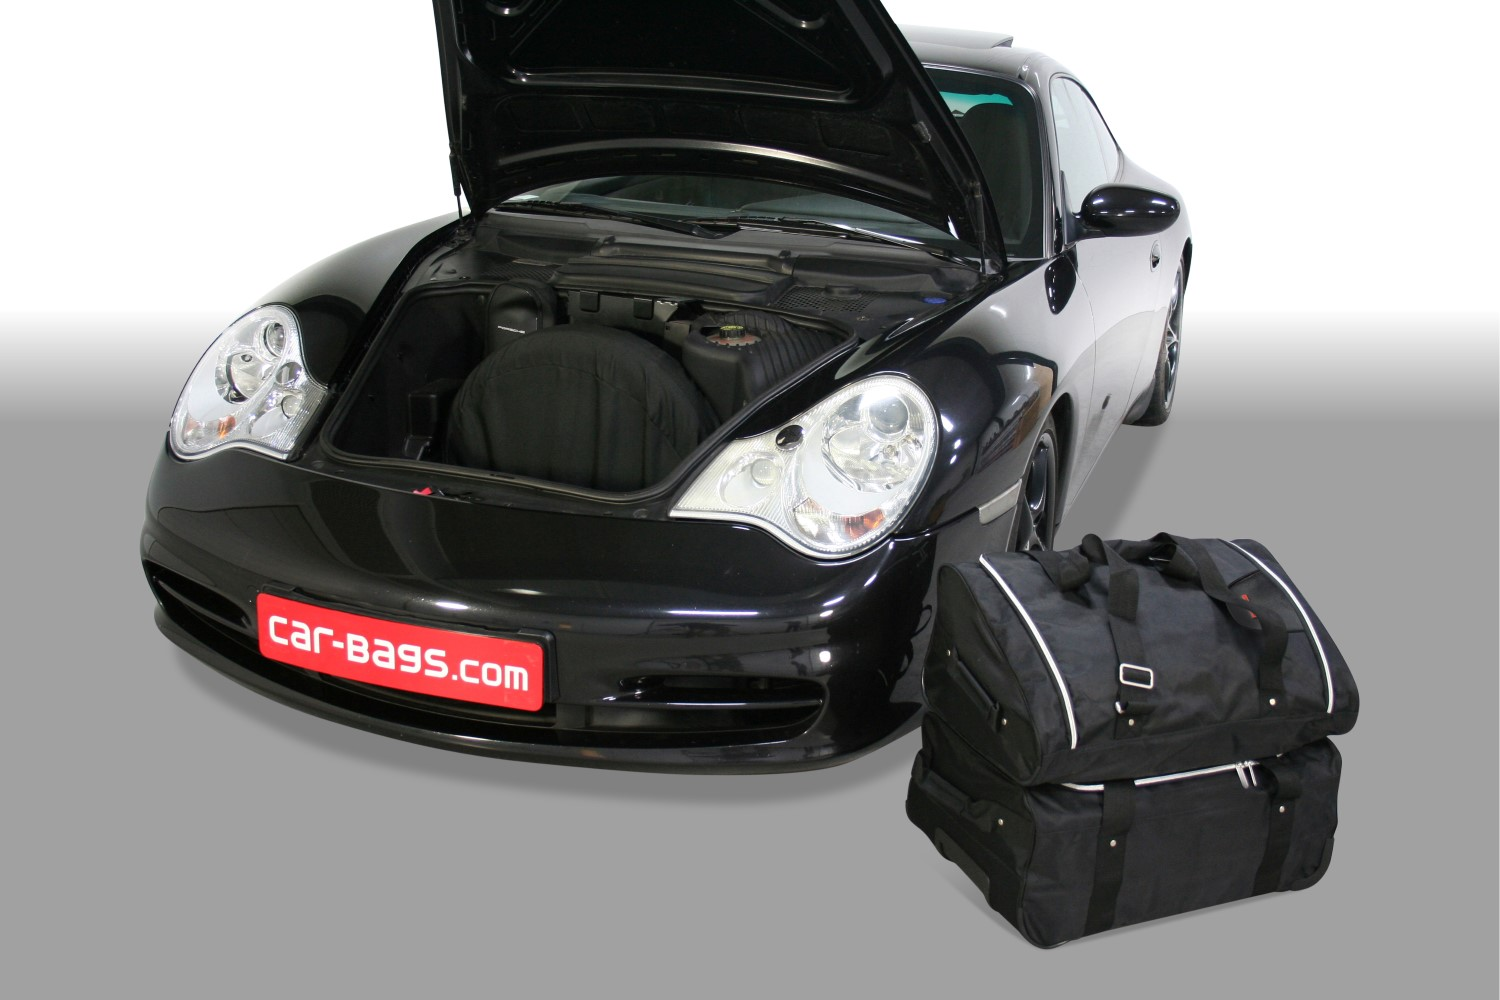 911 porsche 911 996 1997 2006 car bags travel bags 2wd 4wd without cd changer or with cd. Black Bedroom Furniture Sets. Home Design Ideas